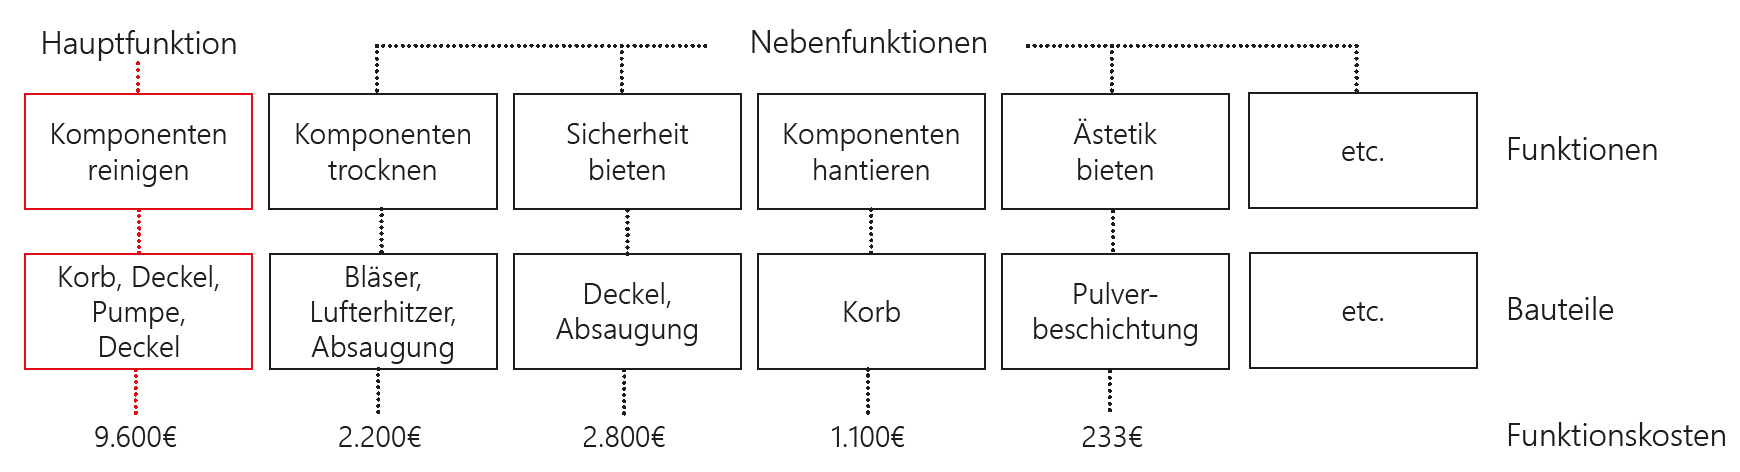 Funktion Kosten, value engineering